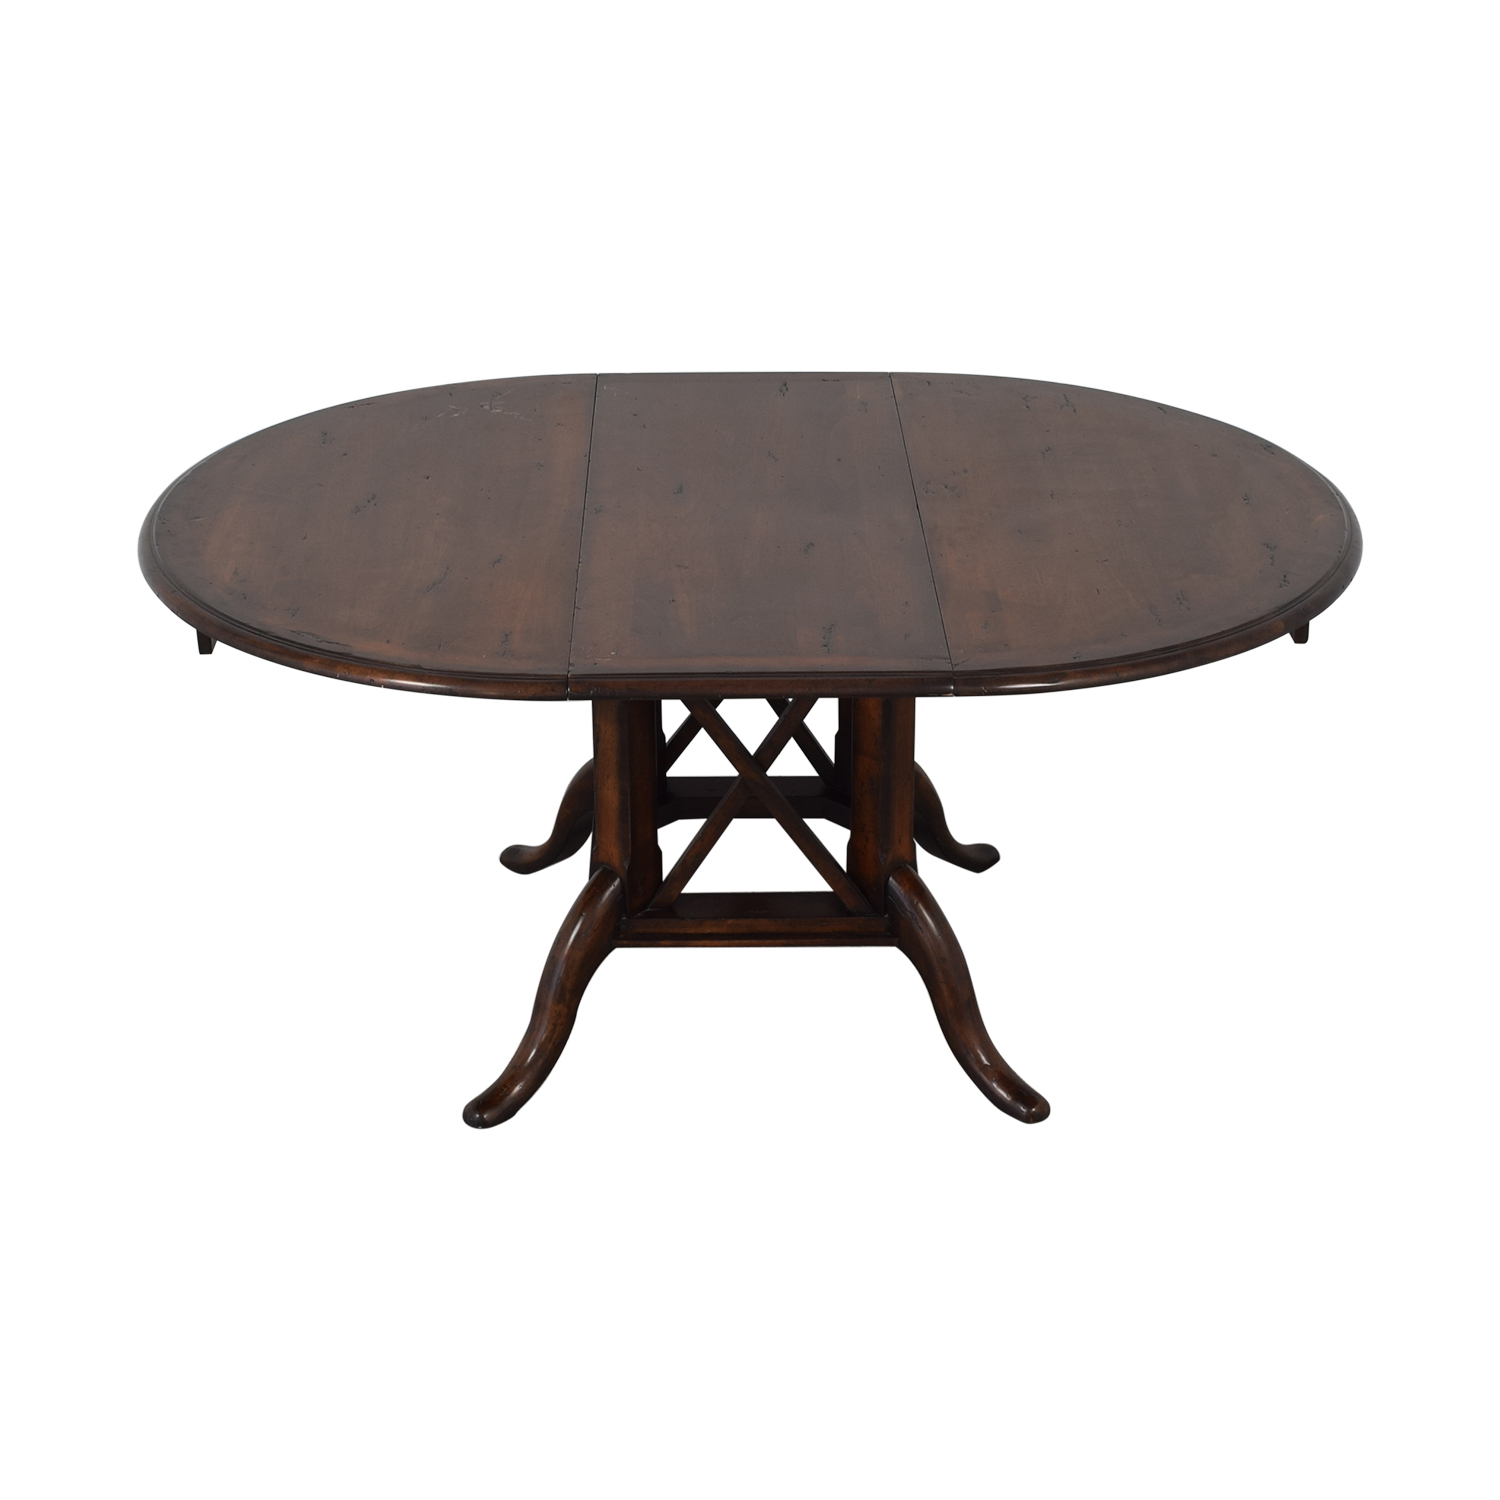 Henredon Furniture Henredon Mahogany Extension Dining Room Table dimensions